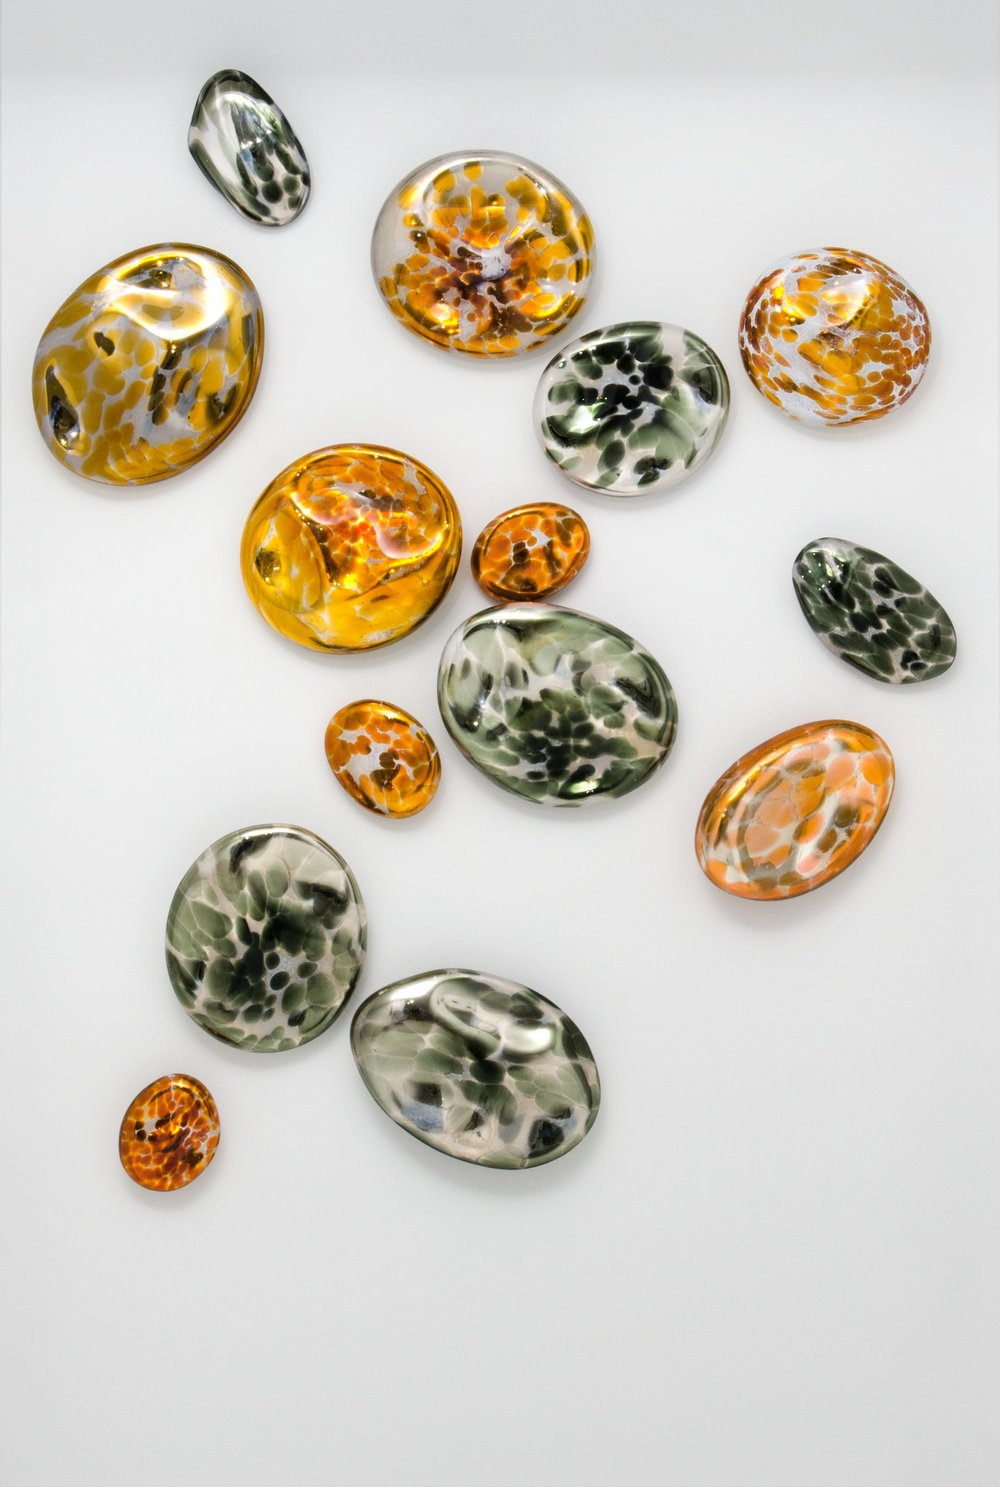 Gold Topaz and Tourmaline Wall Stones